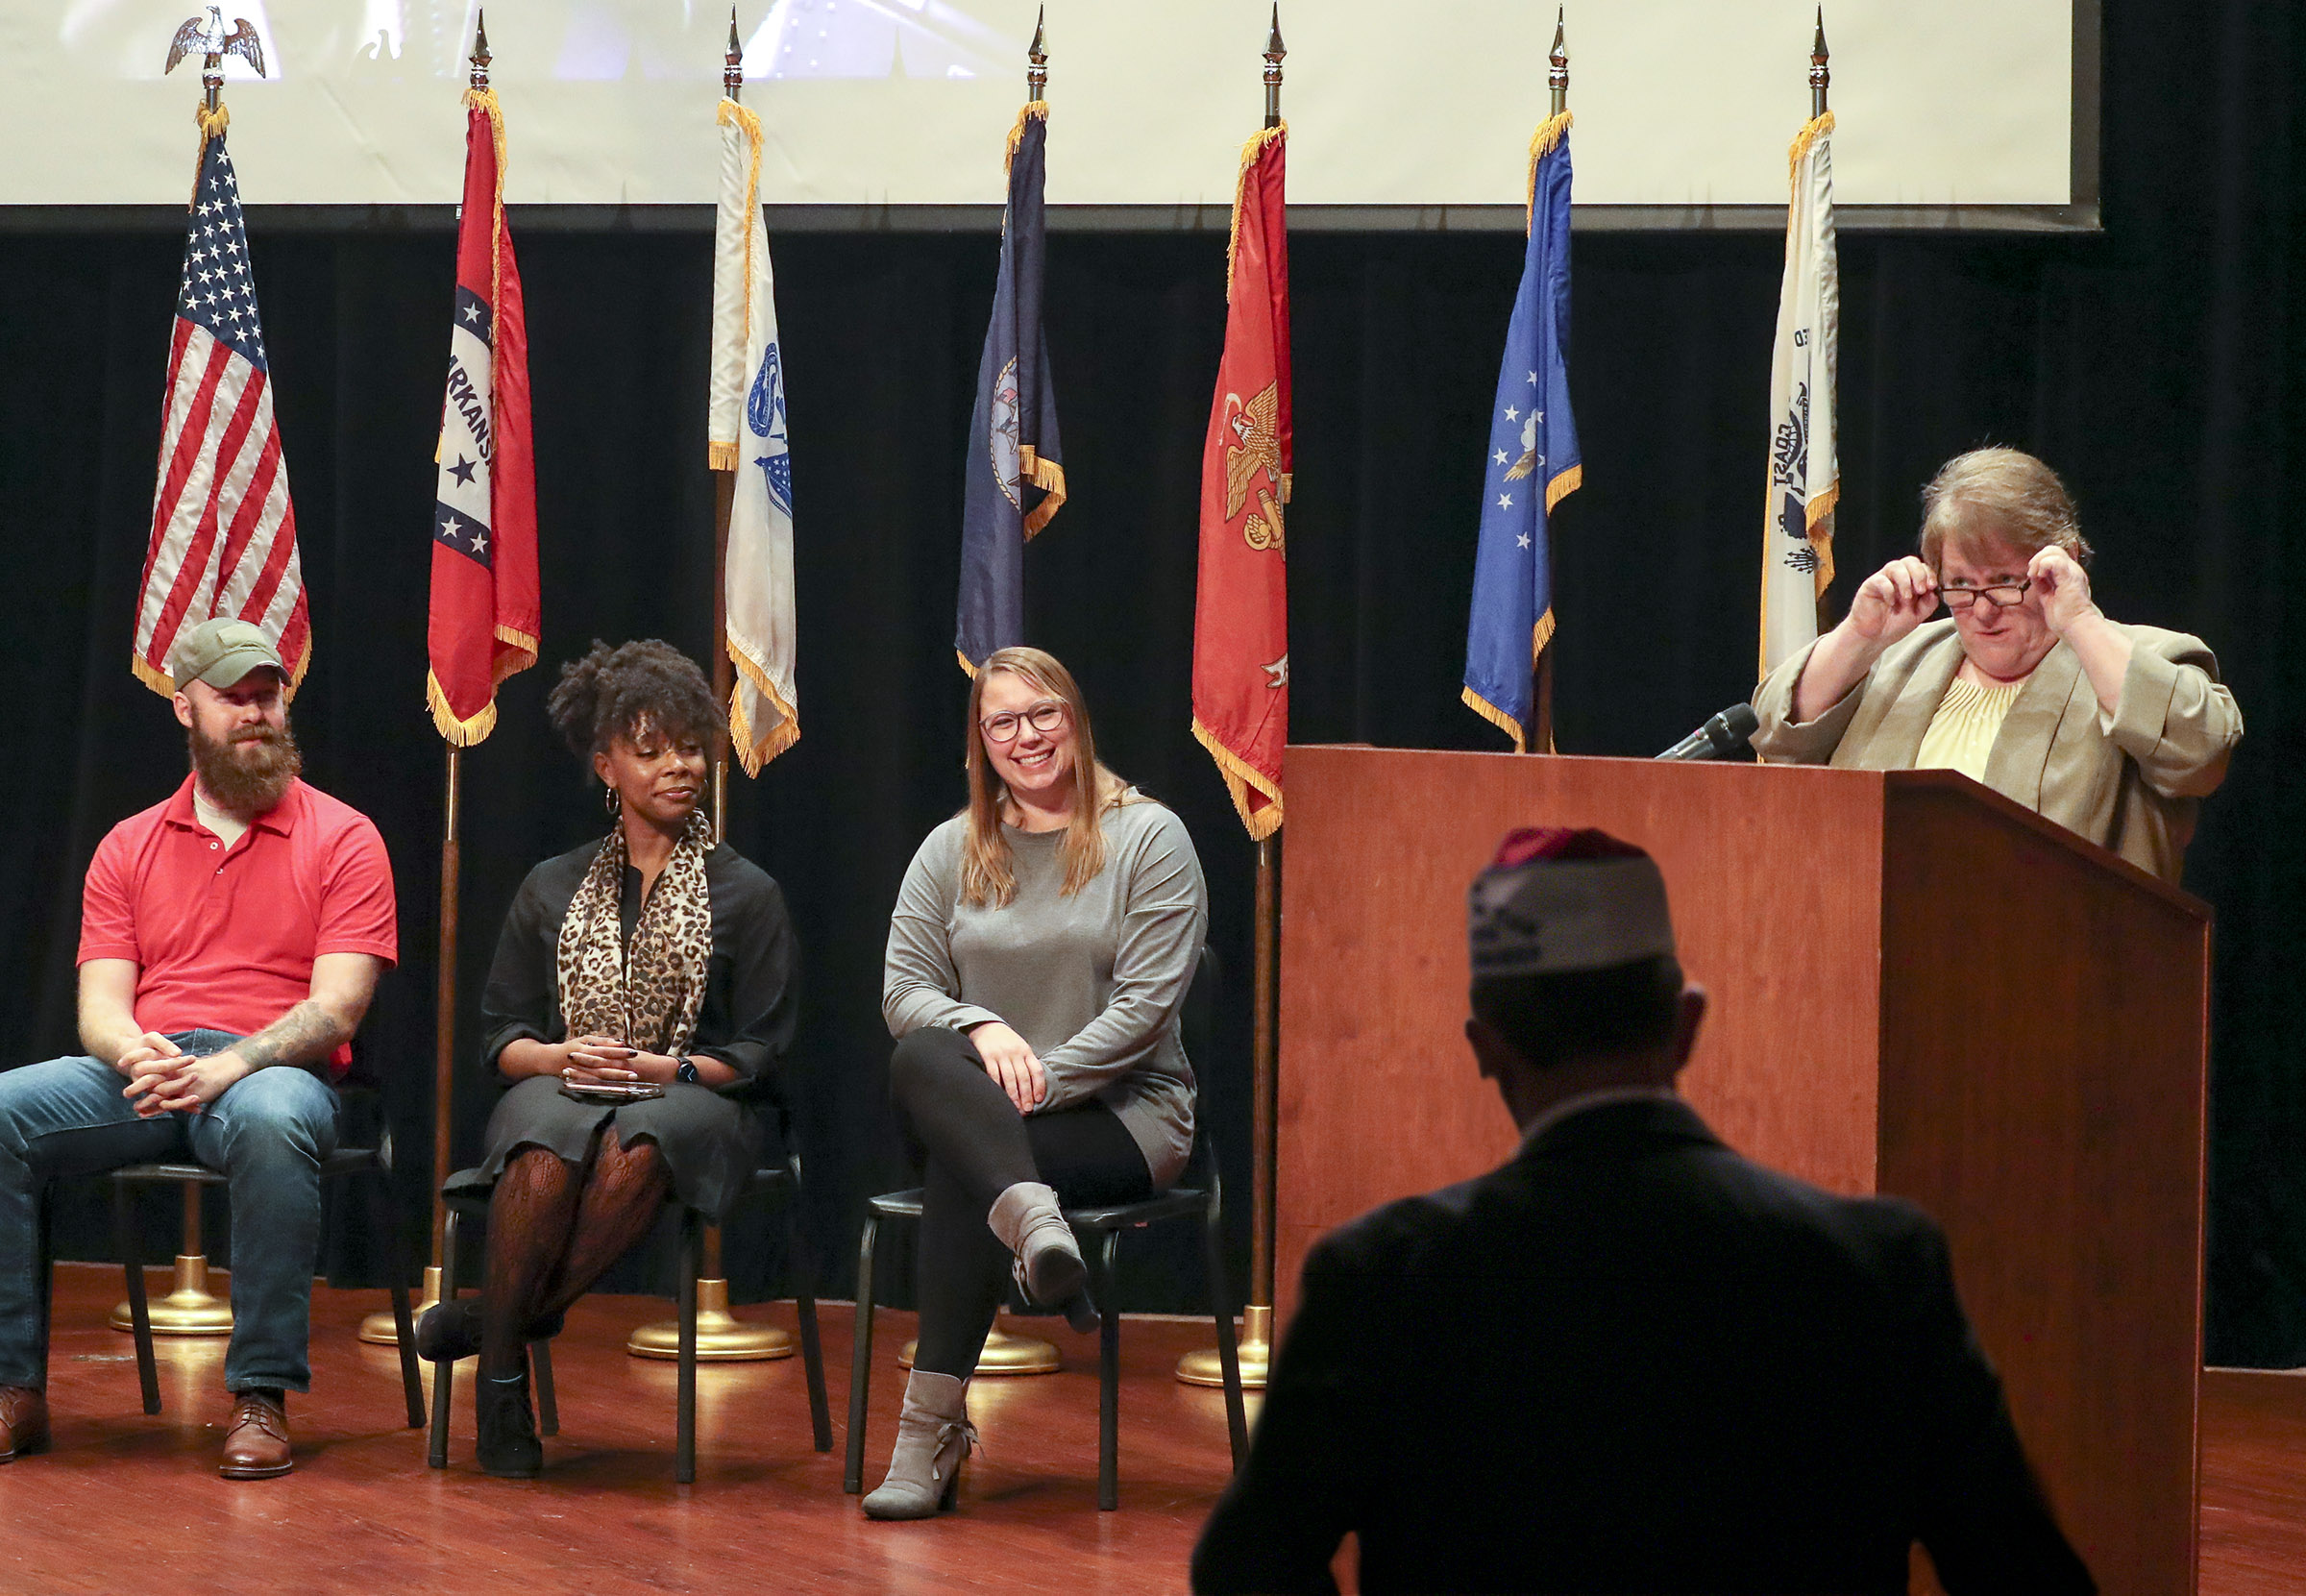 Kathy Oliverio right, honors UA Little Rock student veterans, from left, Sean Lewis, Alexis Harris, and Kaycee Greenwood, who participated in a Veterans Day ceremony. Photo by Ben Krain.